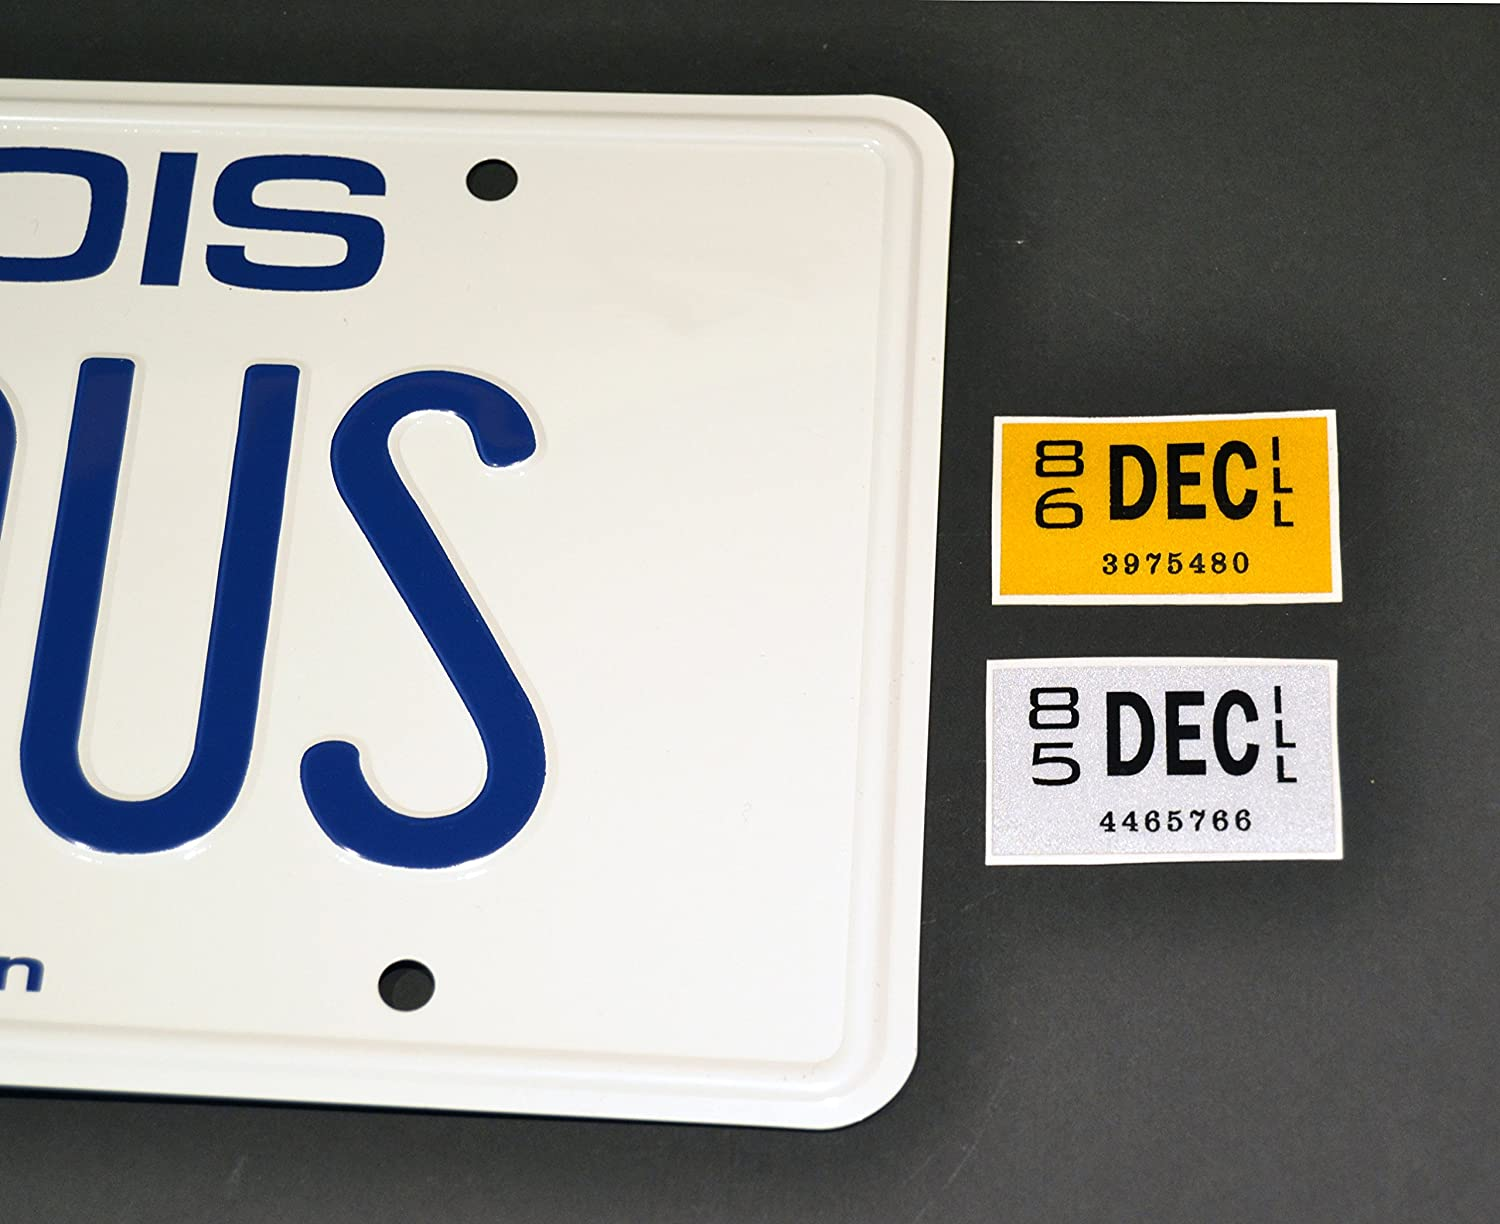 Metal Stamped Vanity Prop License Plate Ferrari 250GT Spyder Celebrity Machines Ferris Buellers Day Off NRVOUS